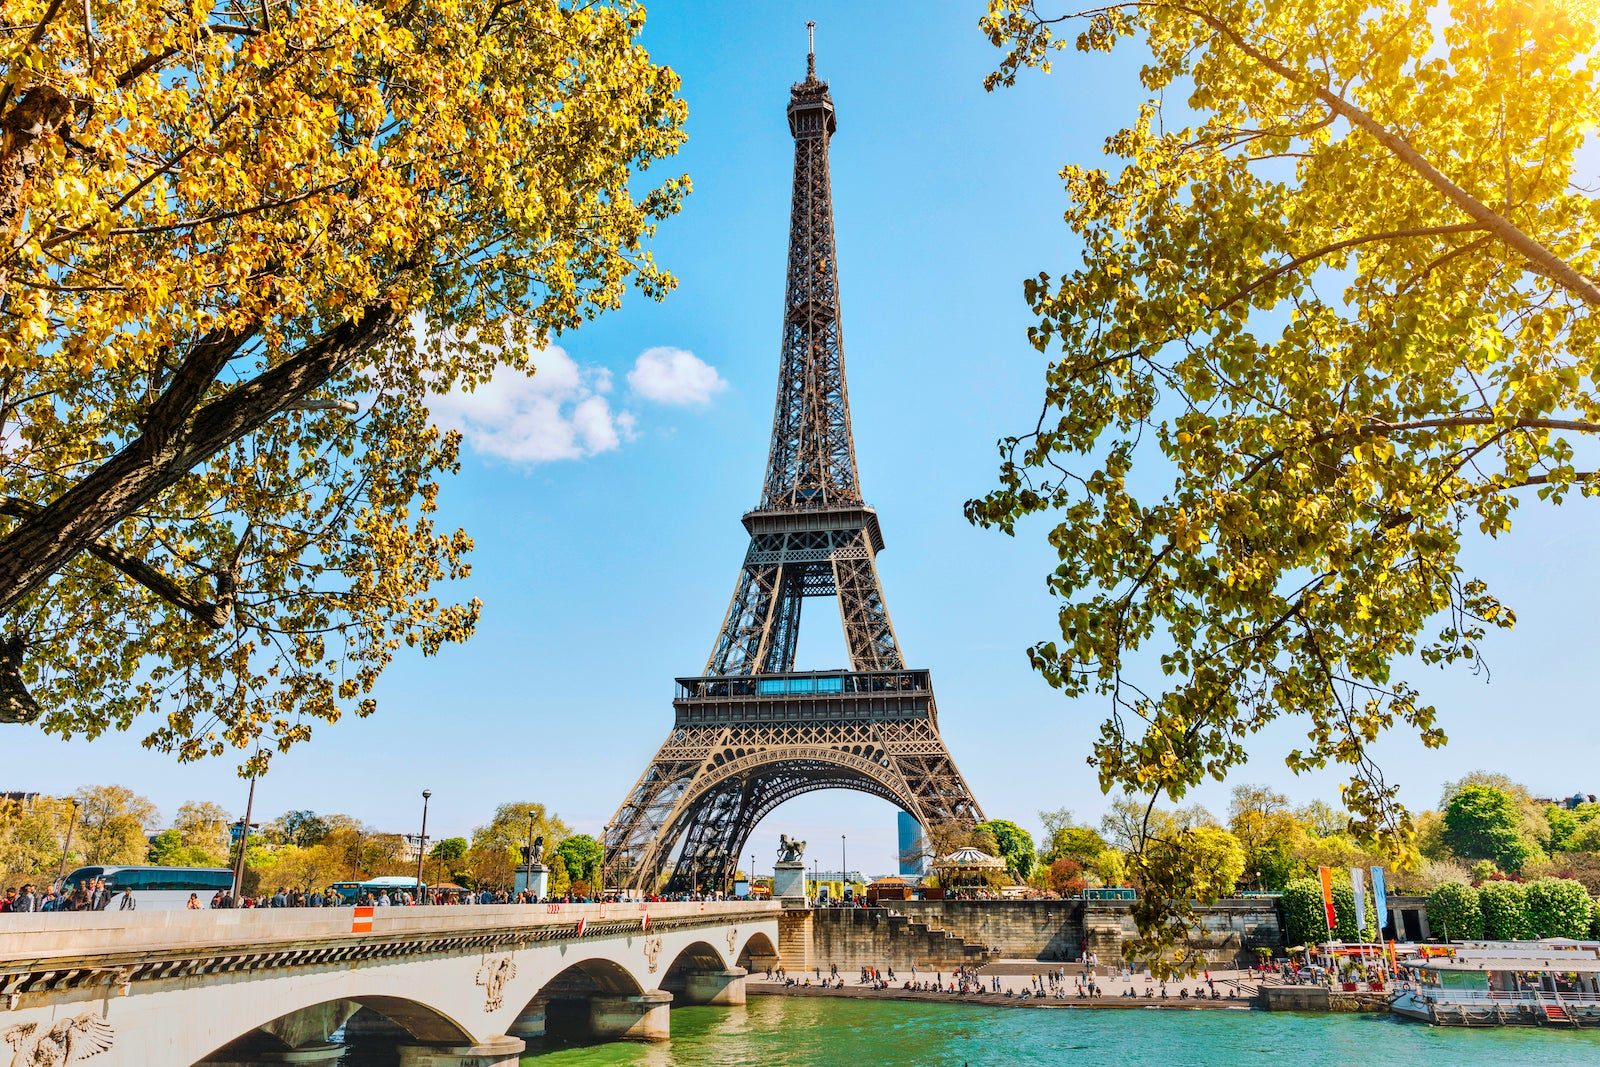 What Americans can expect when traveling to France during the pandemic